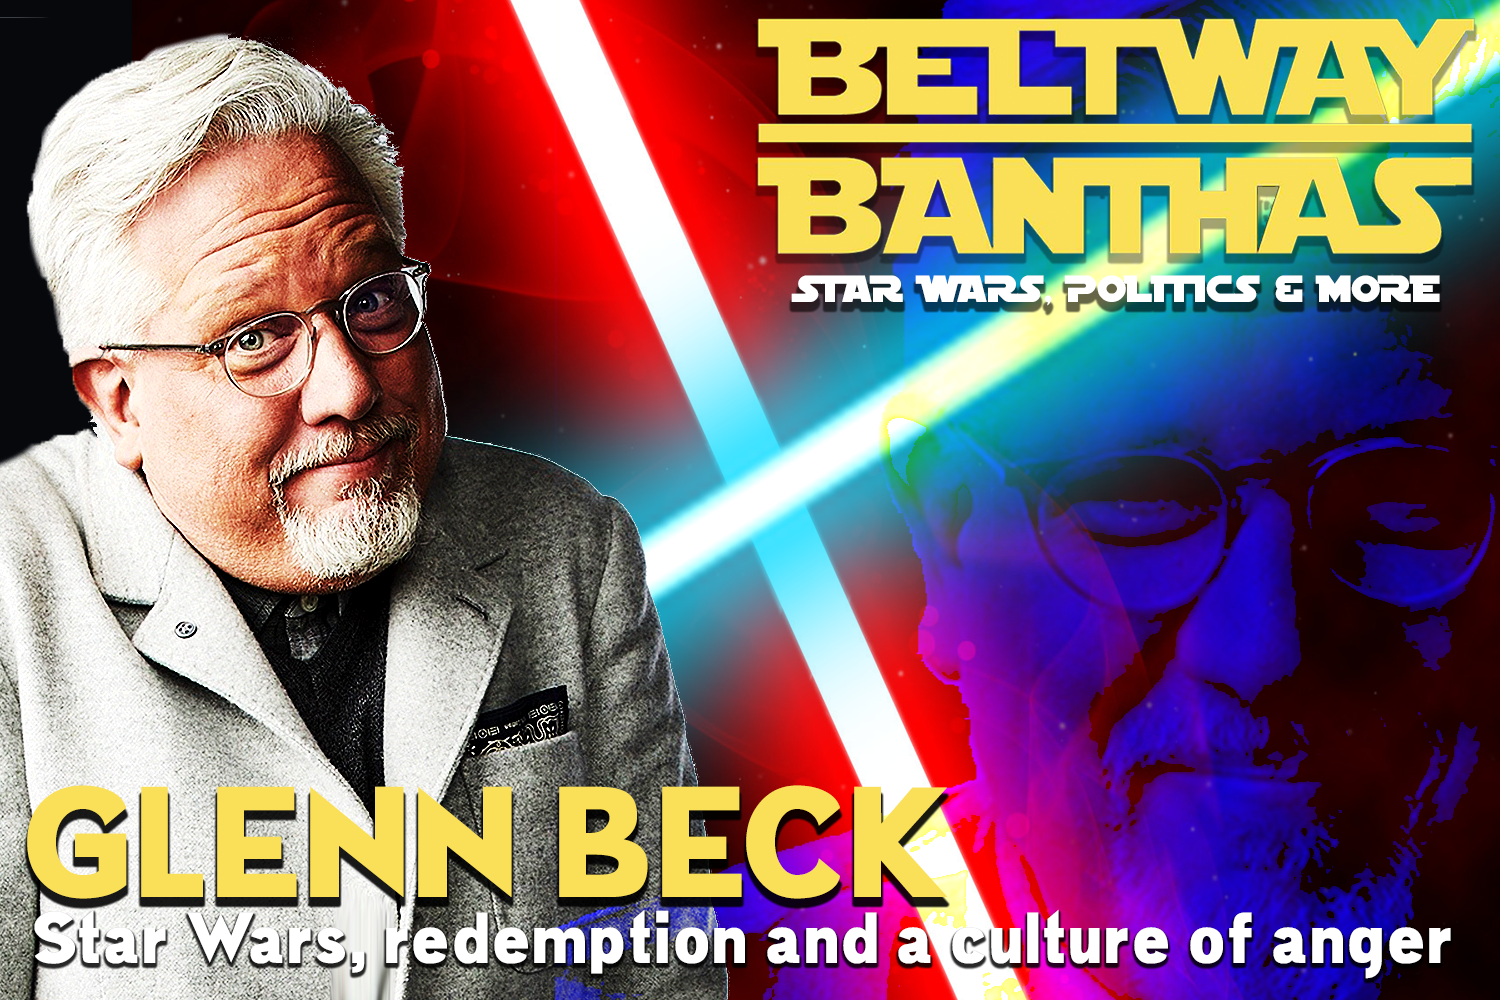 Beltway Banthas Interview: Glenn Beck on Star Wars, redemption and a culture of anger